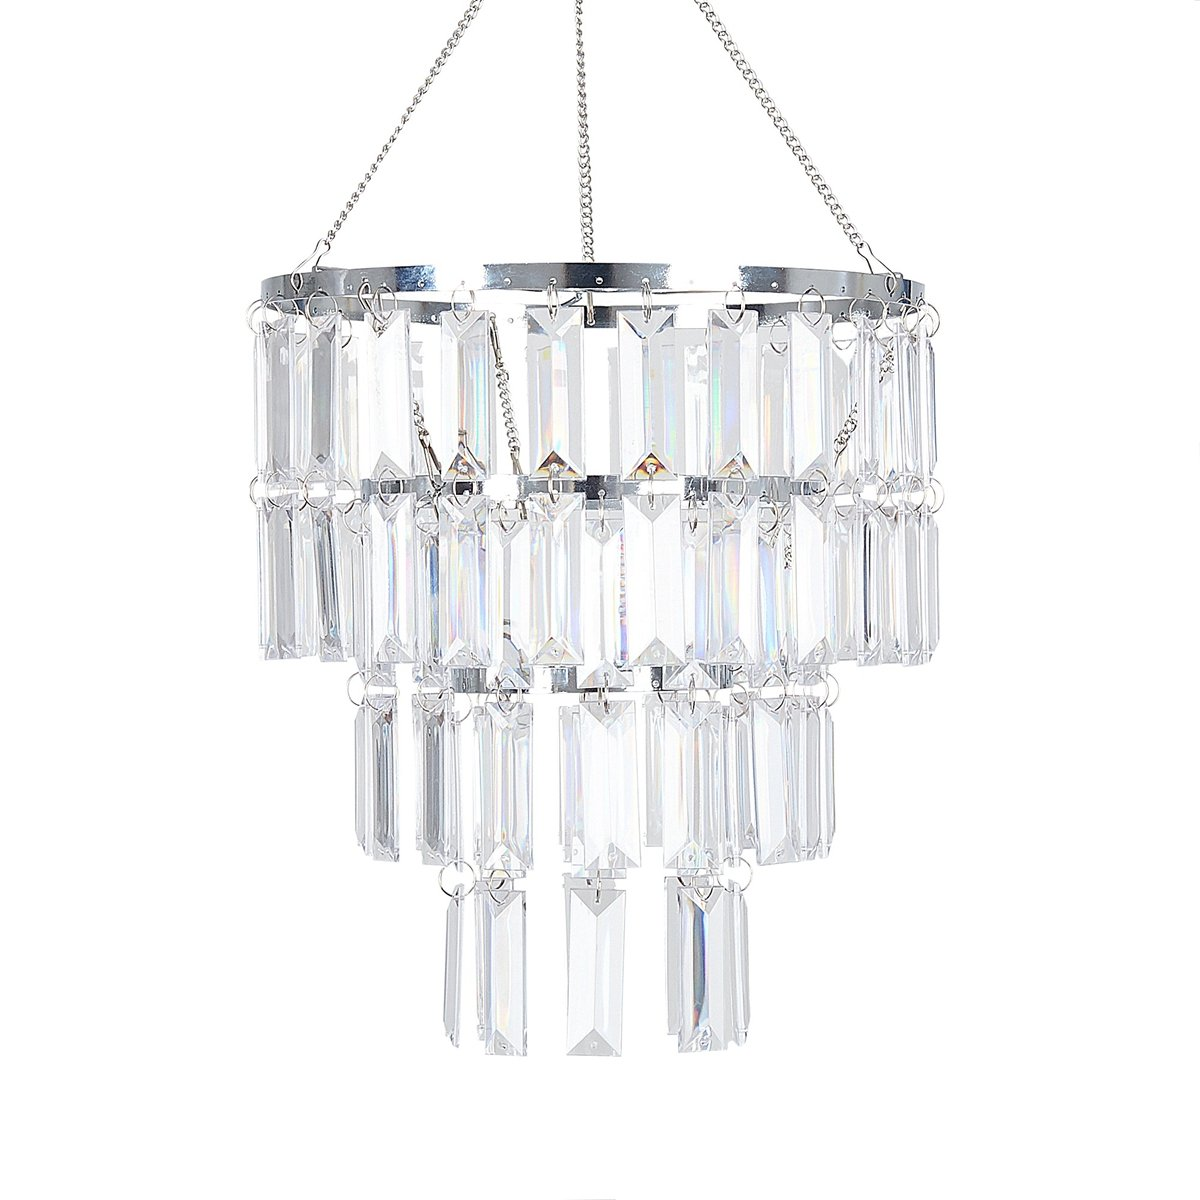 "FlavorThings Faux Crystal Lampshade-Clear Rectangle Acrylic Pendant Light Lamp Shade,10.25"" Diam 11.5"" Tall,Great idea for Wedding Chandeliers Centerpieces Decoration and Any Event Party Home Decor"